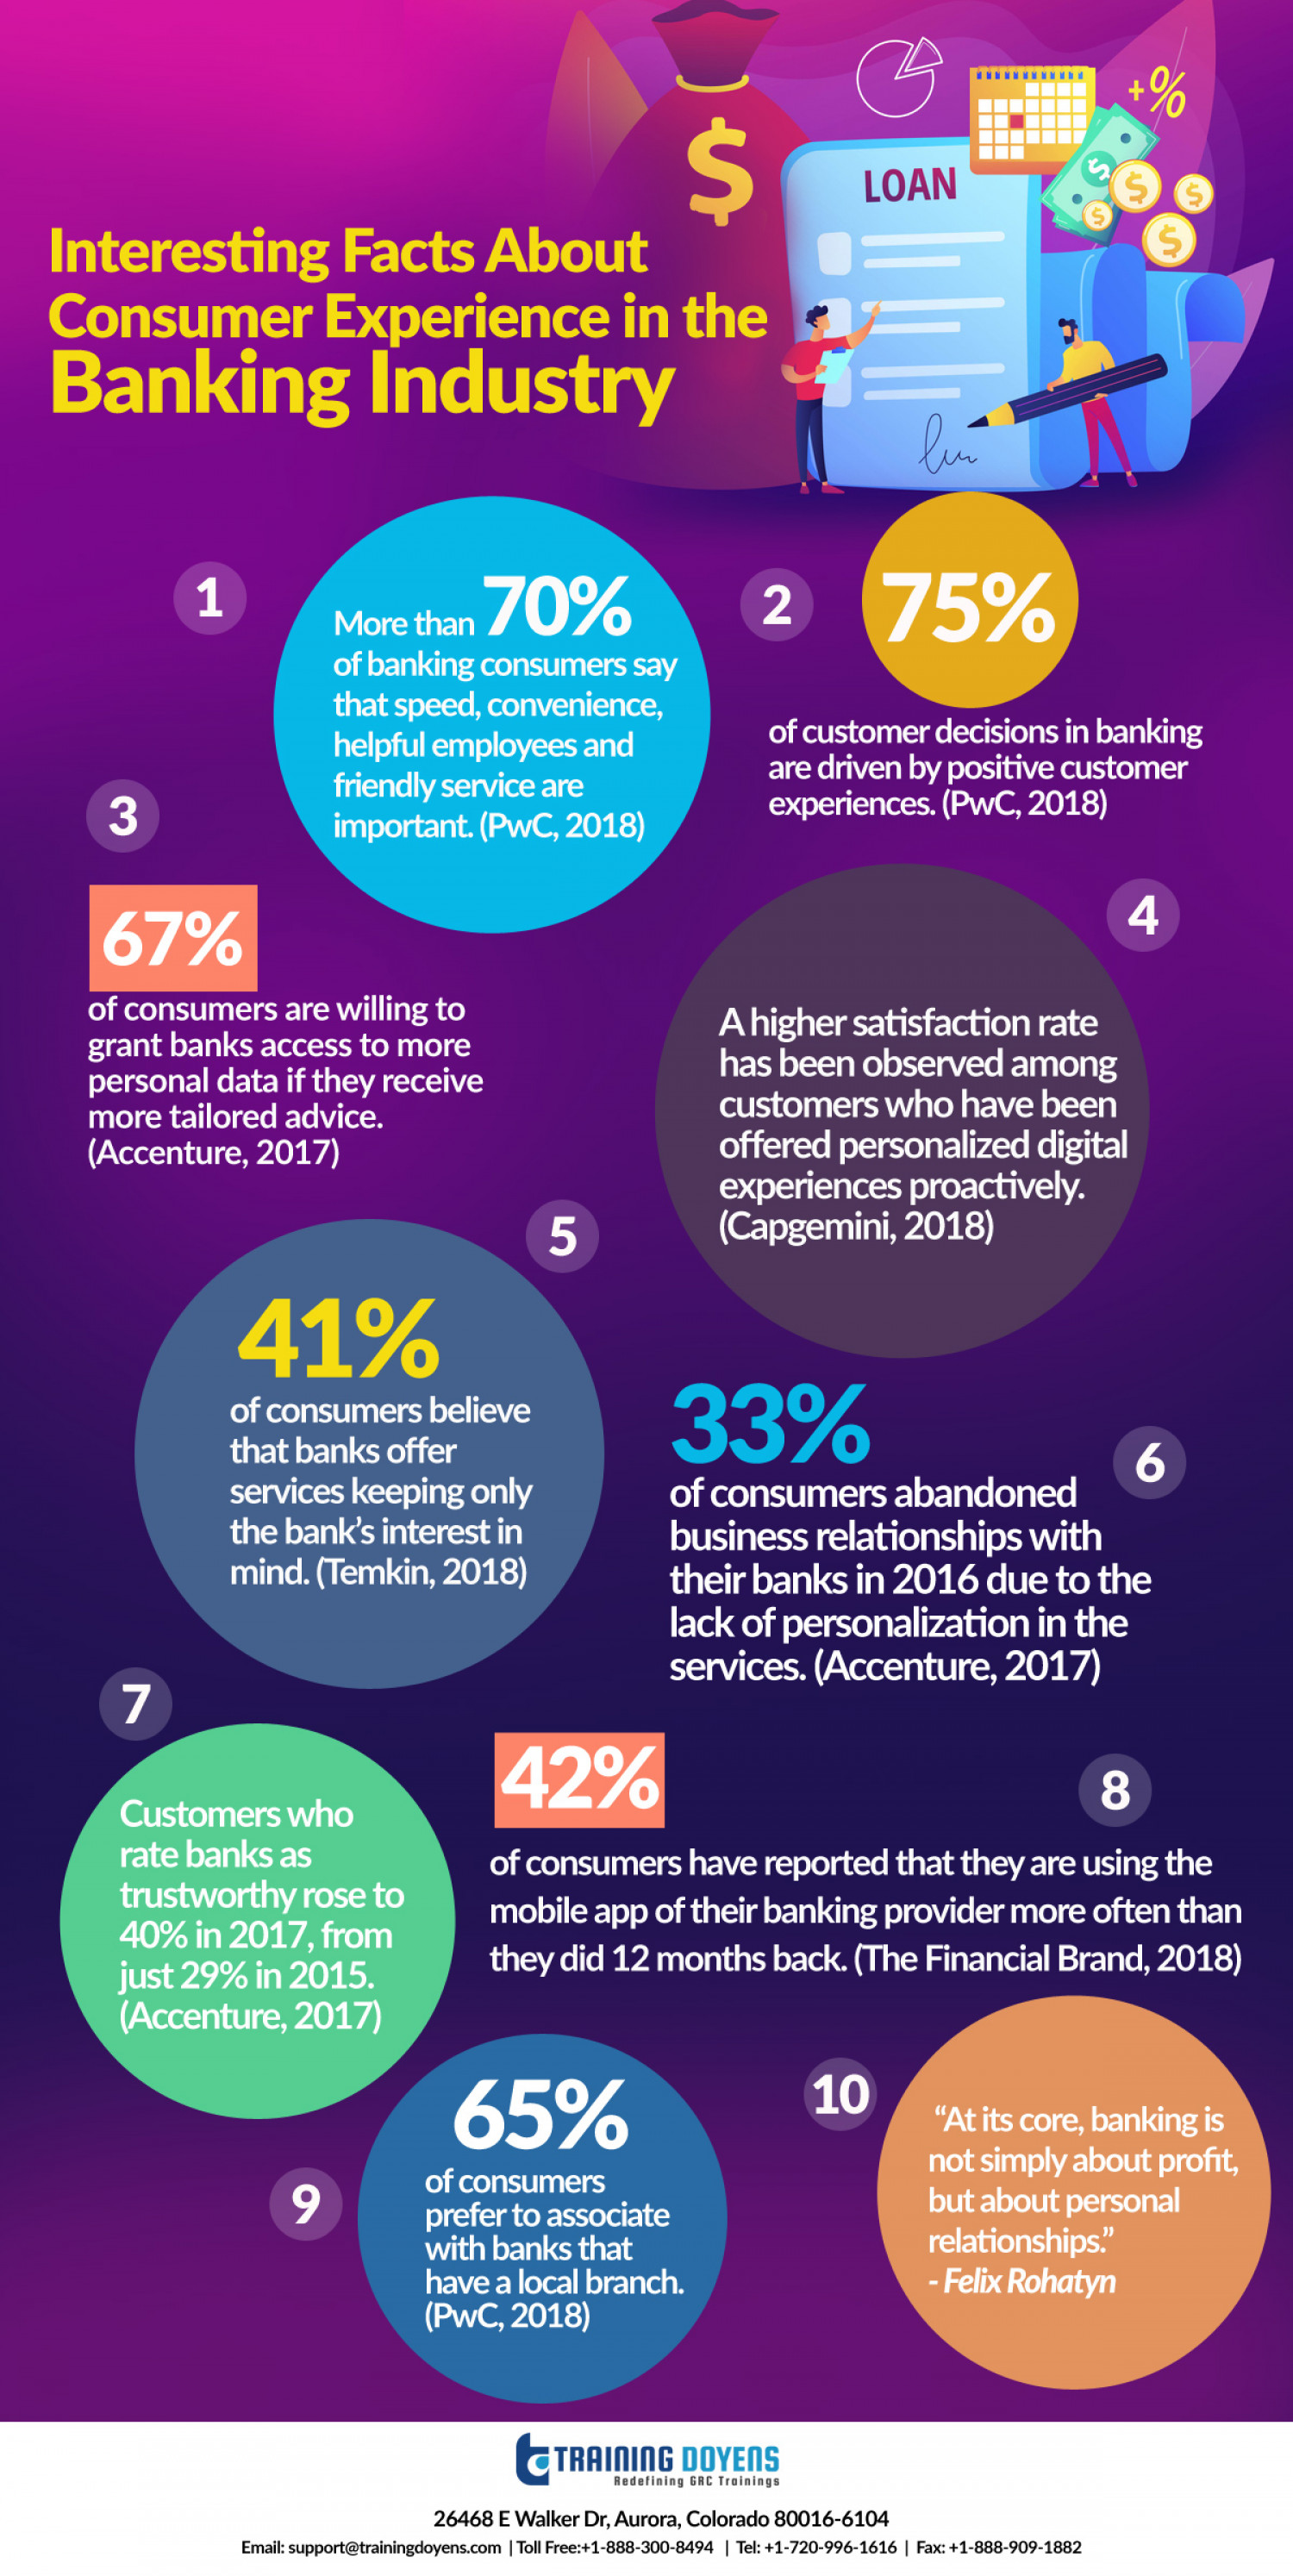 Interesting Facts About Consumer Experience in the Banking Industry Infographic